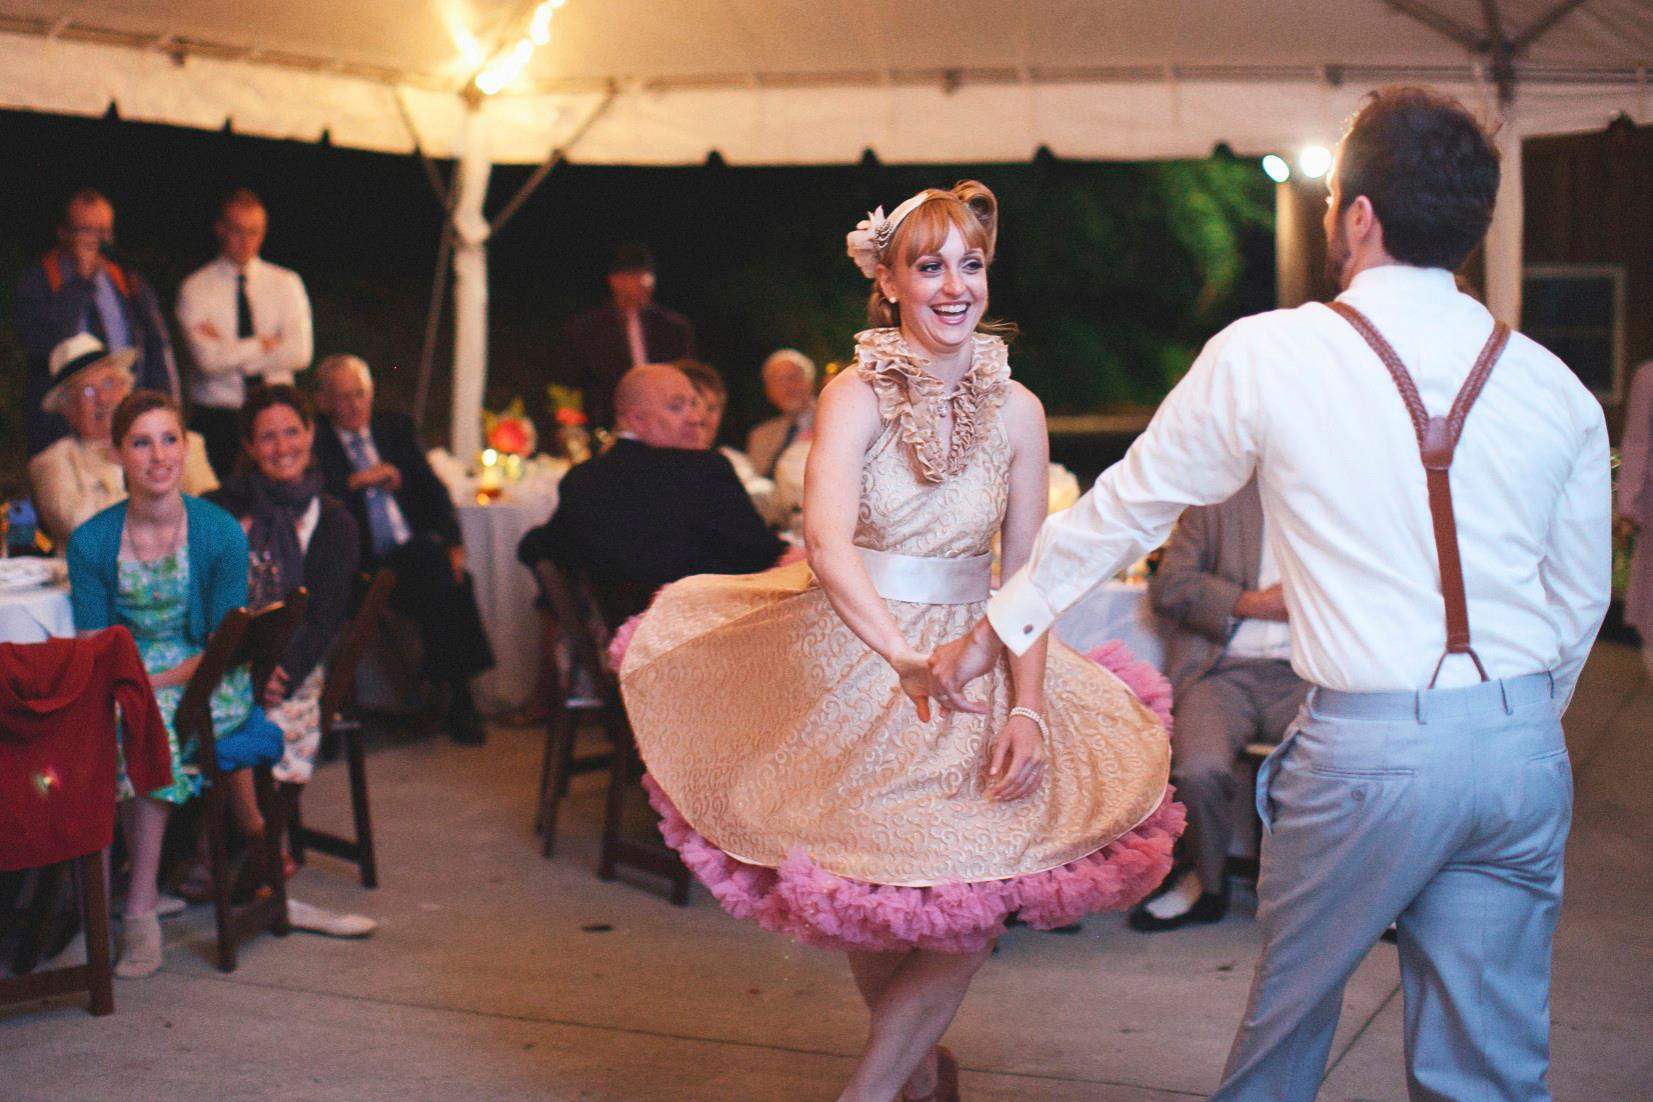 """Dan and Amanda, students of Duet Dance Studio, did a fun swing dance routine to their first dance song, """"Cheek to Cheek"""" at their wedding. Photo by  Love Is A Big Deal."""